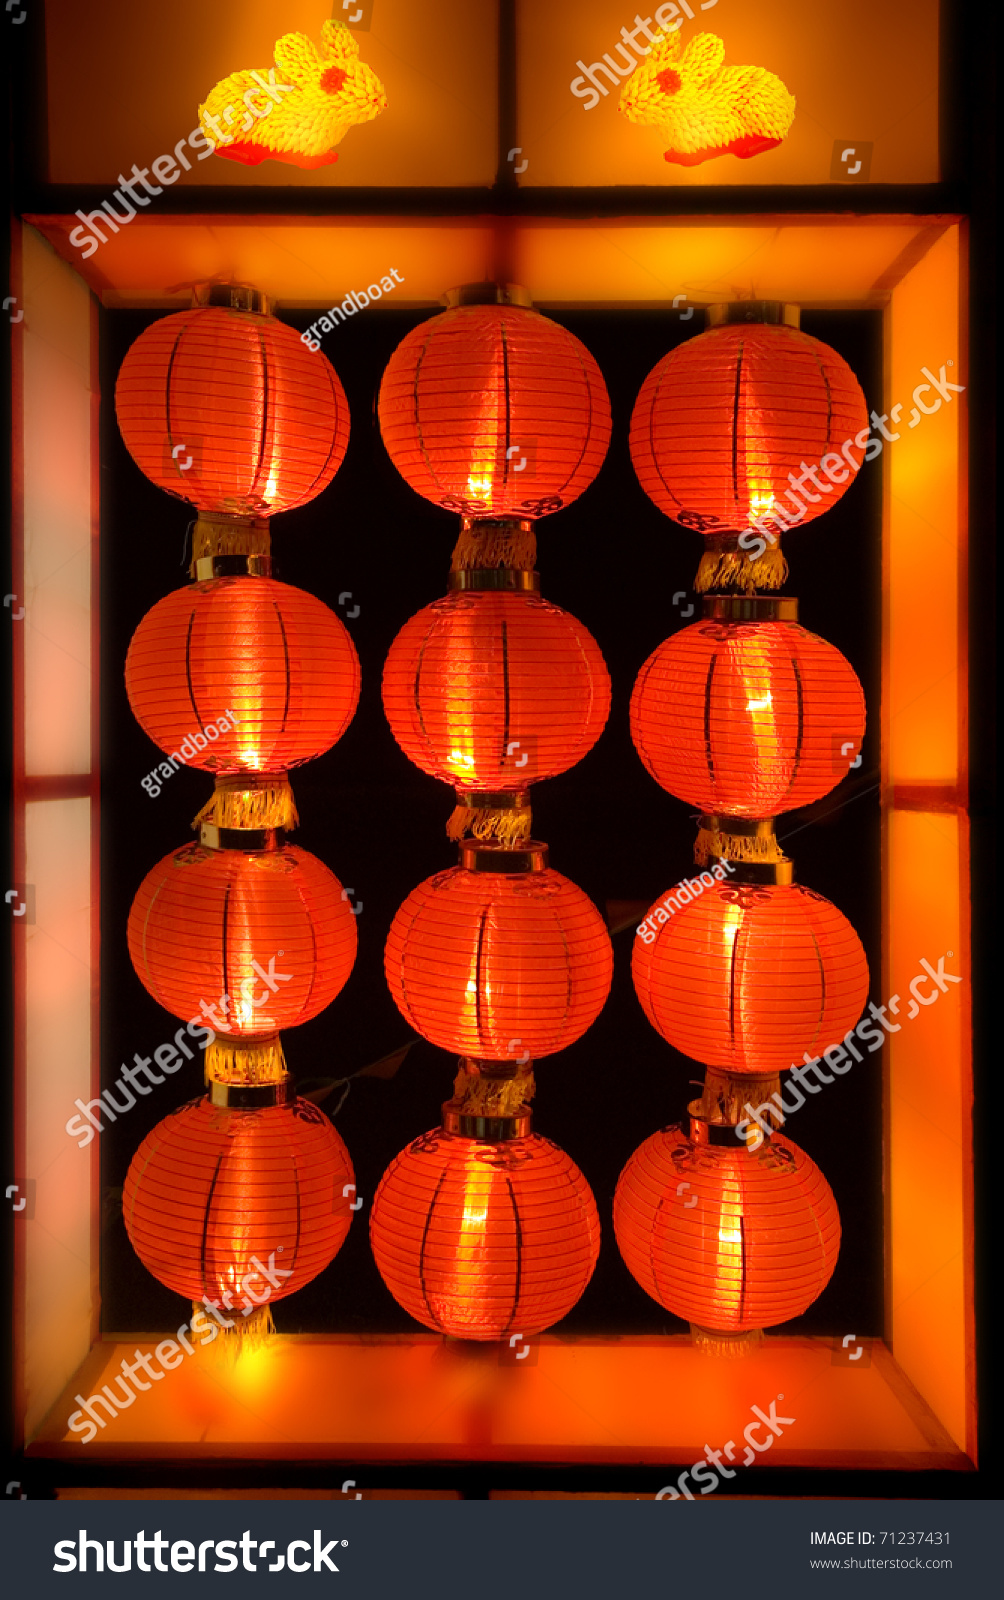 chinese elements for corporate culture Chinese culture, tradition and customs present day chinese culture is an amalgamation of old world traditions and a westernized lifestyle the two co-exist like the traditional yin yang formula of balance.